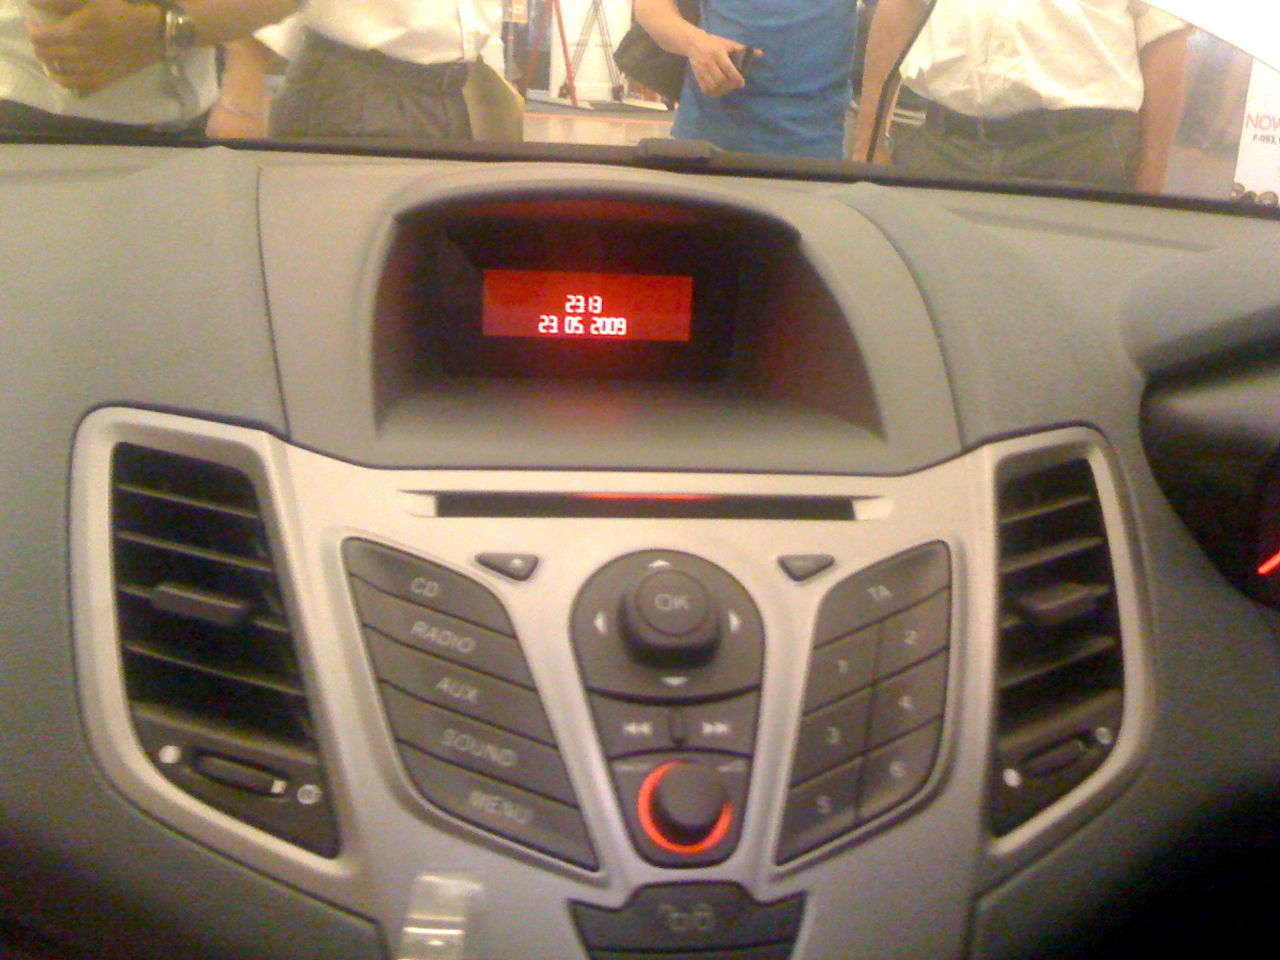 autoradio probleme fonctionnel sur ford fiesta 2010 autos. Black Bedroom Furniture Sets. Home Design Ideas